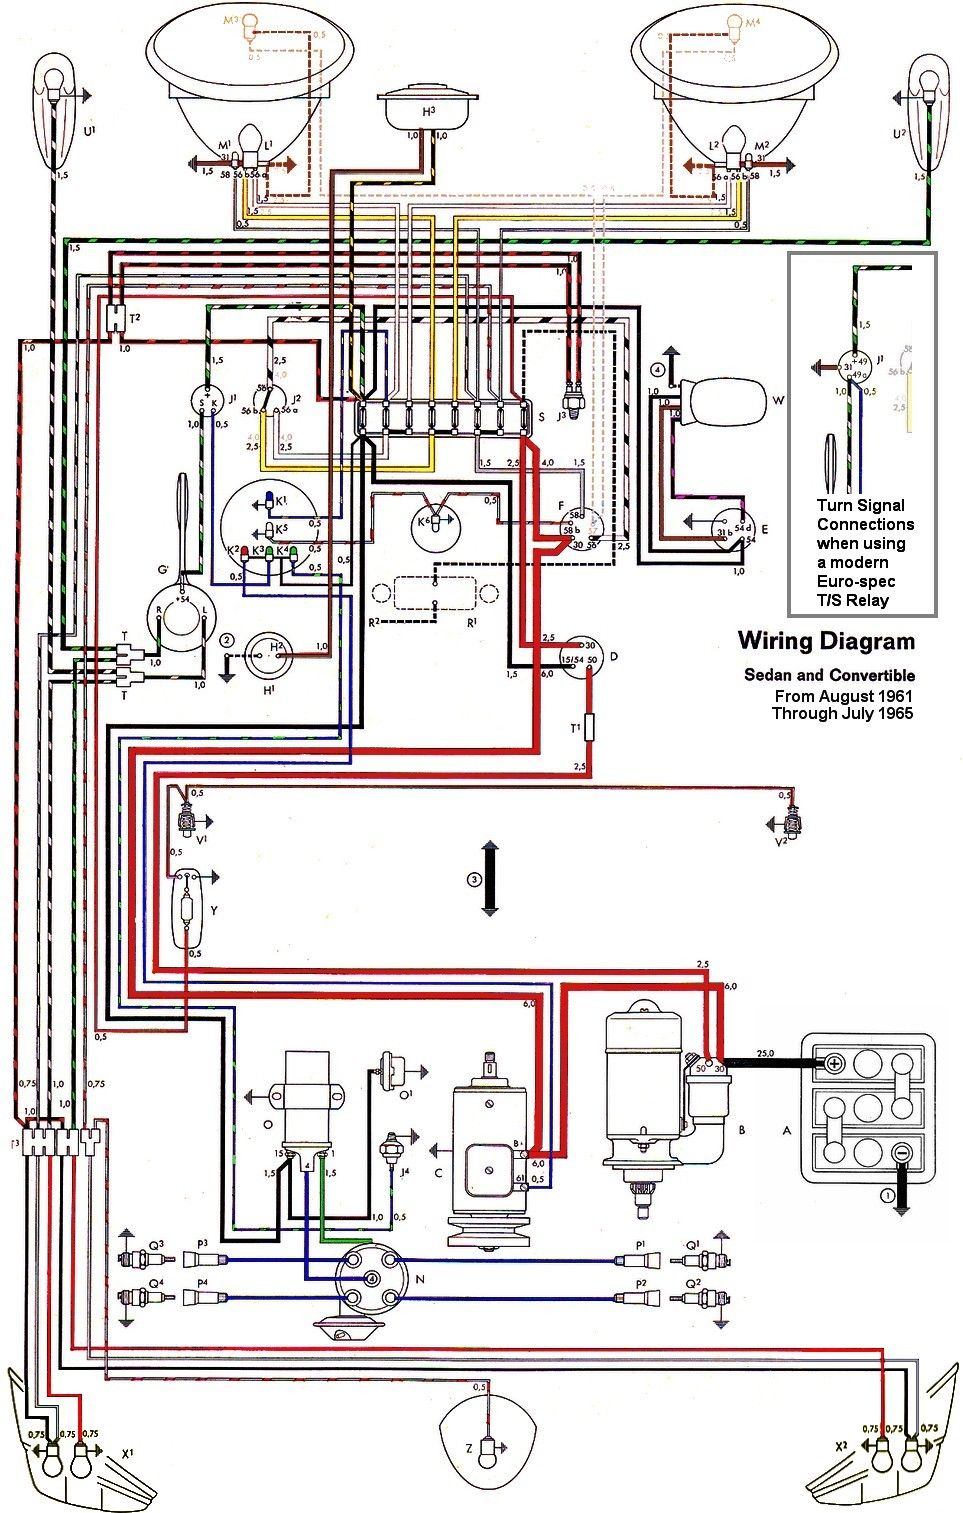 wiring diagram vw beetle sedan and convertible 1961 1965 vw in rh pinterest  com vw beetle wiring diagram 1971 vw beetle wiring diagram 1974